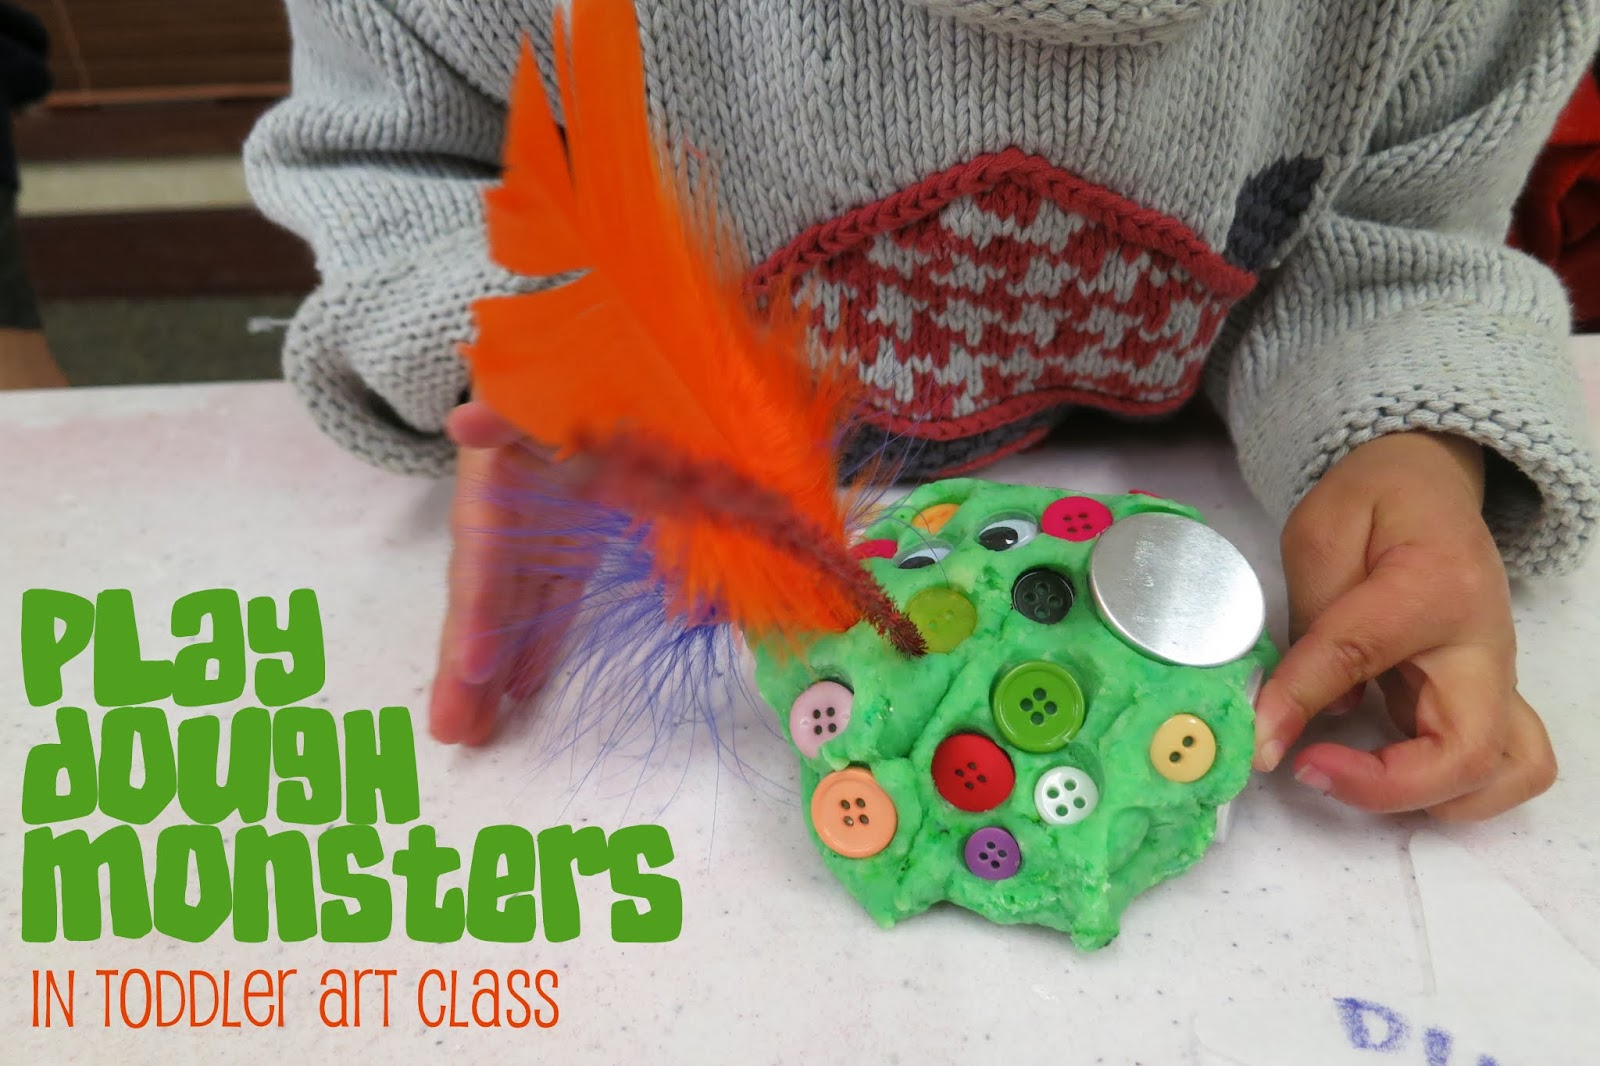 http://librarymakers.blogspot.com/2014/02/toddler-art-class-playdough-monsters.html